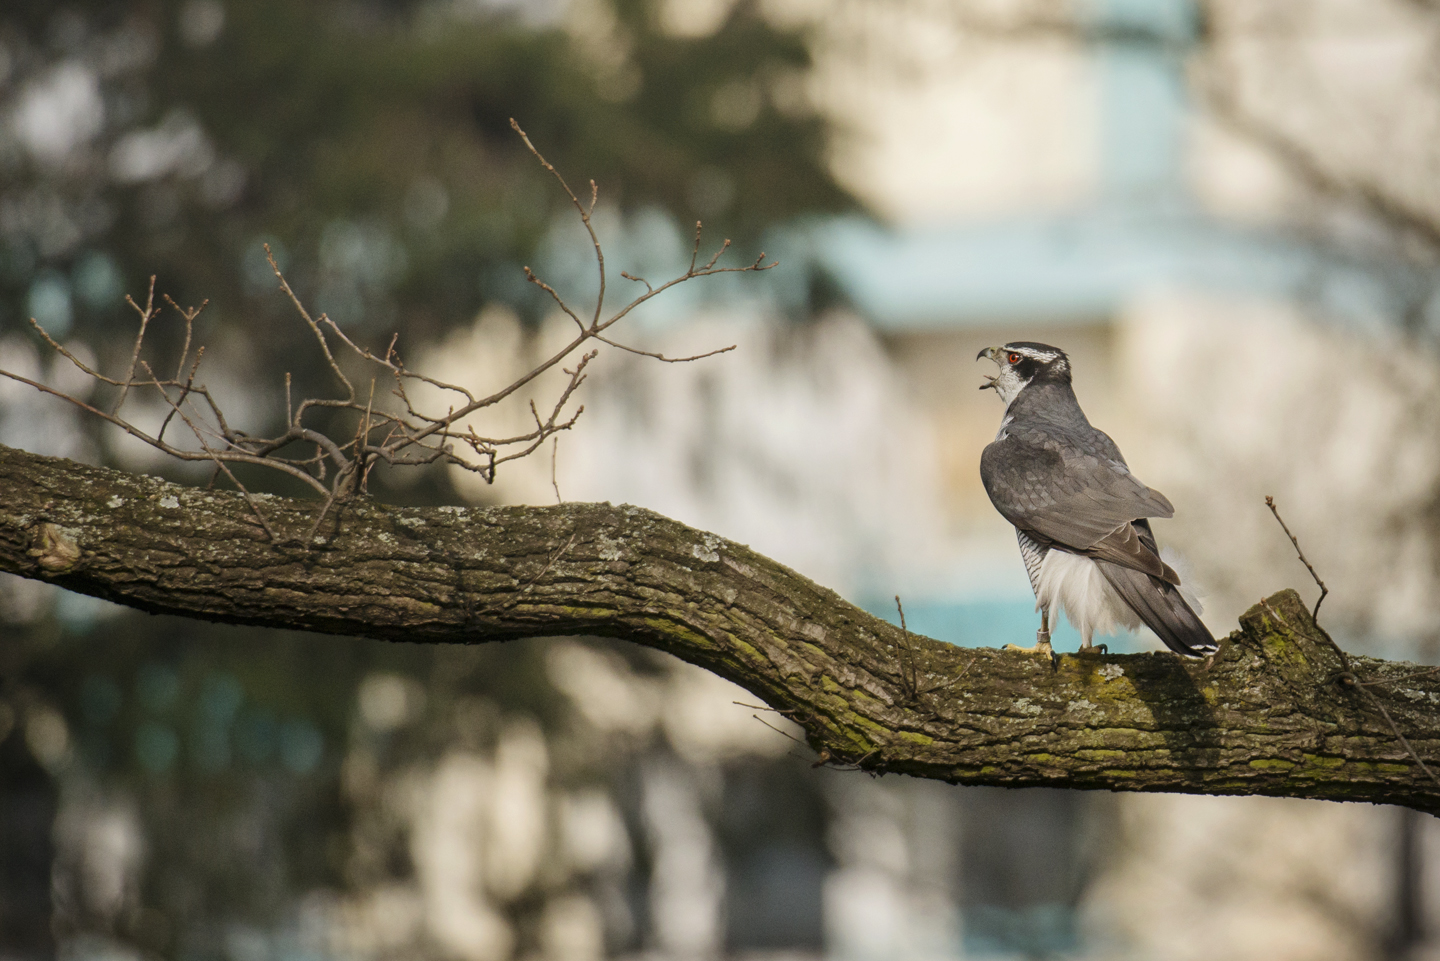 Many goshawks nest in Berlin's suburban forests, but cemeteries, city parks and urban courtyards are increasingly common breeding territories